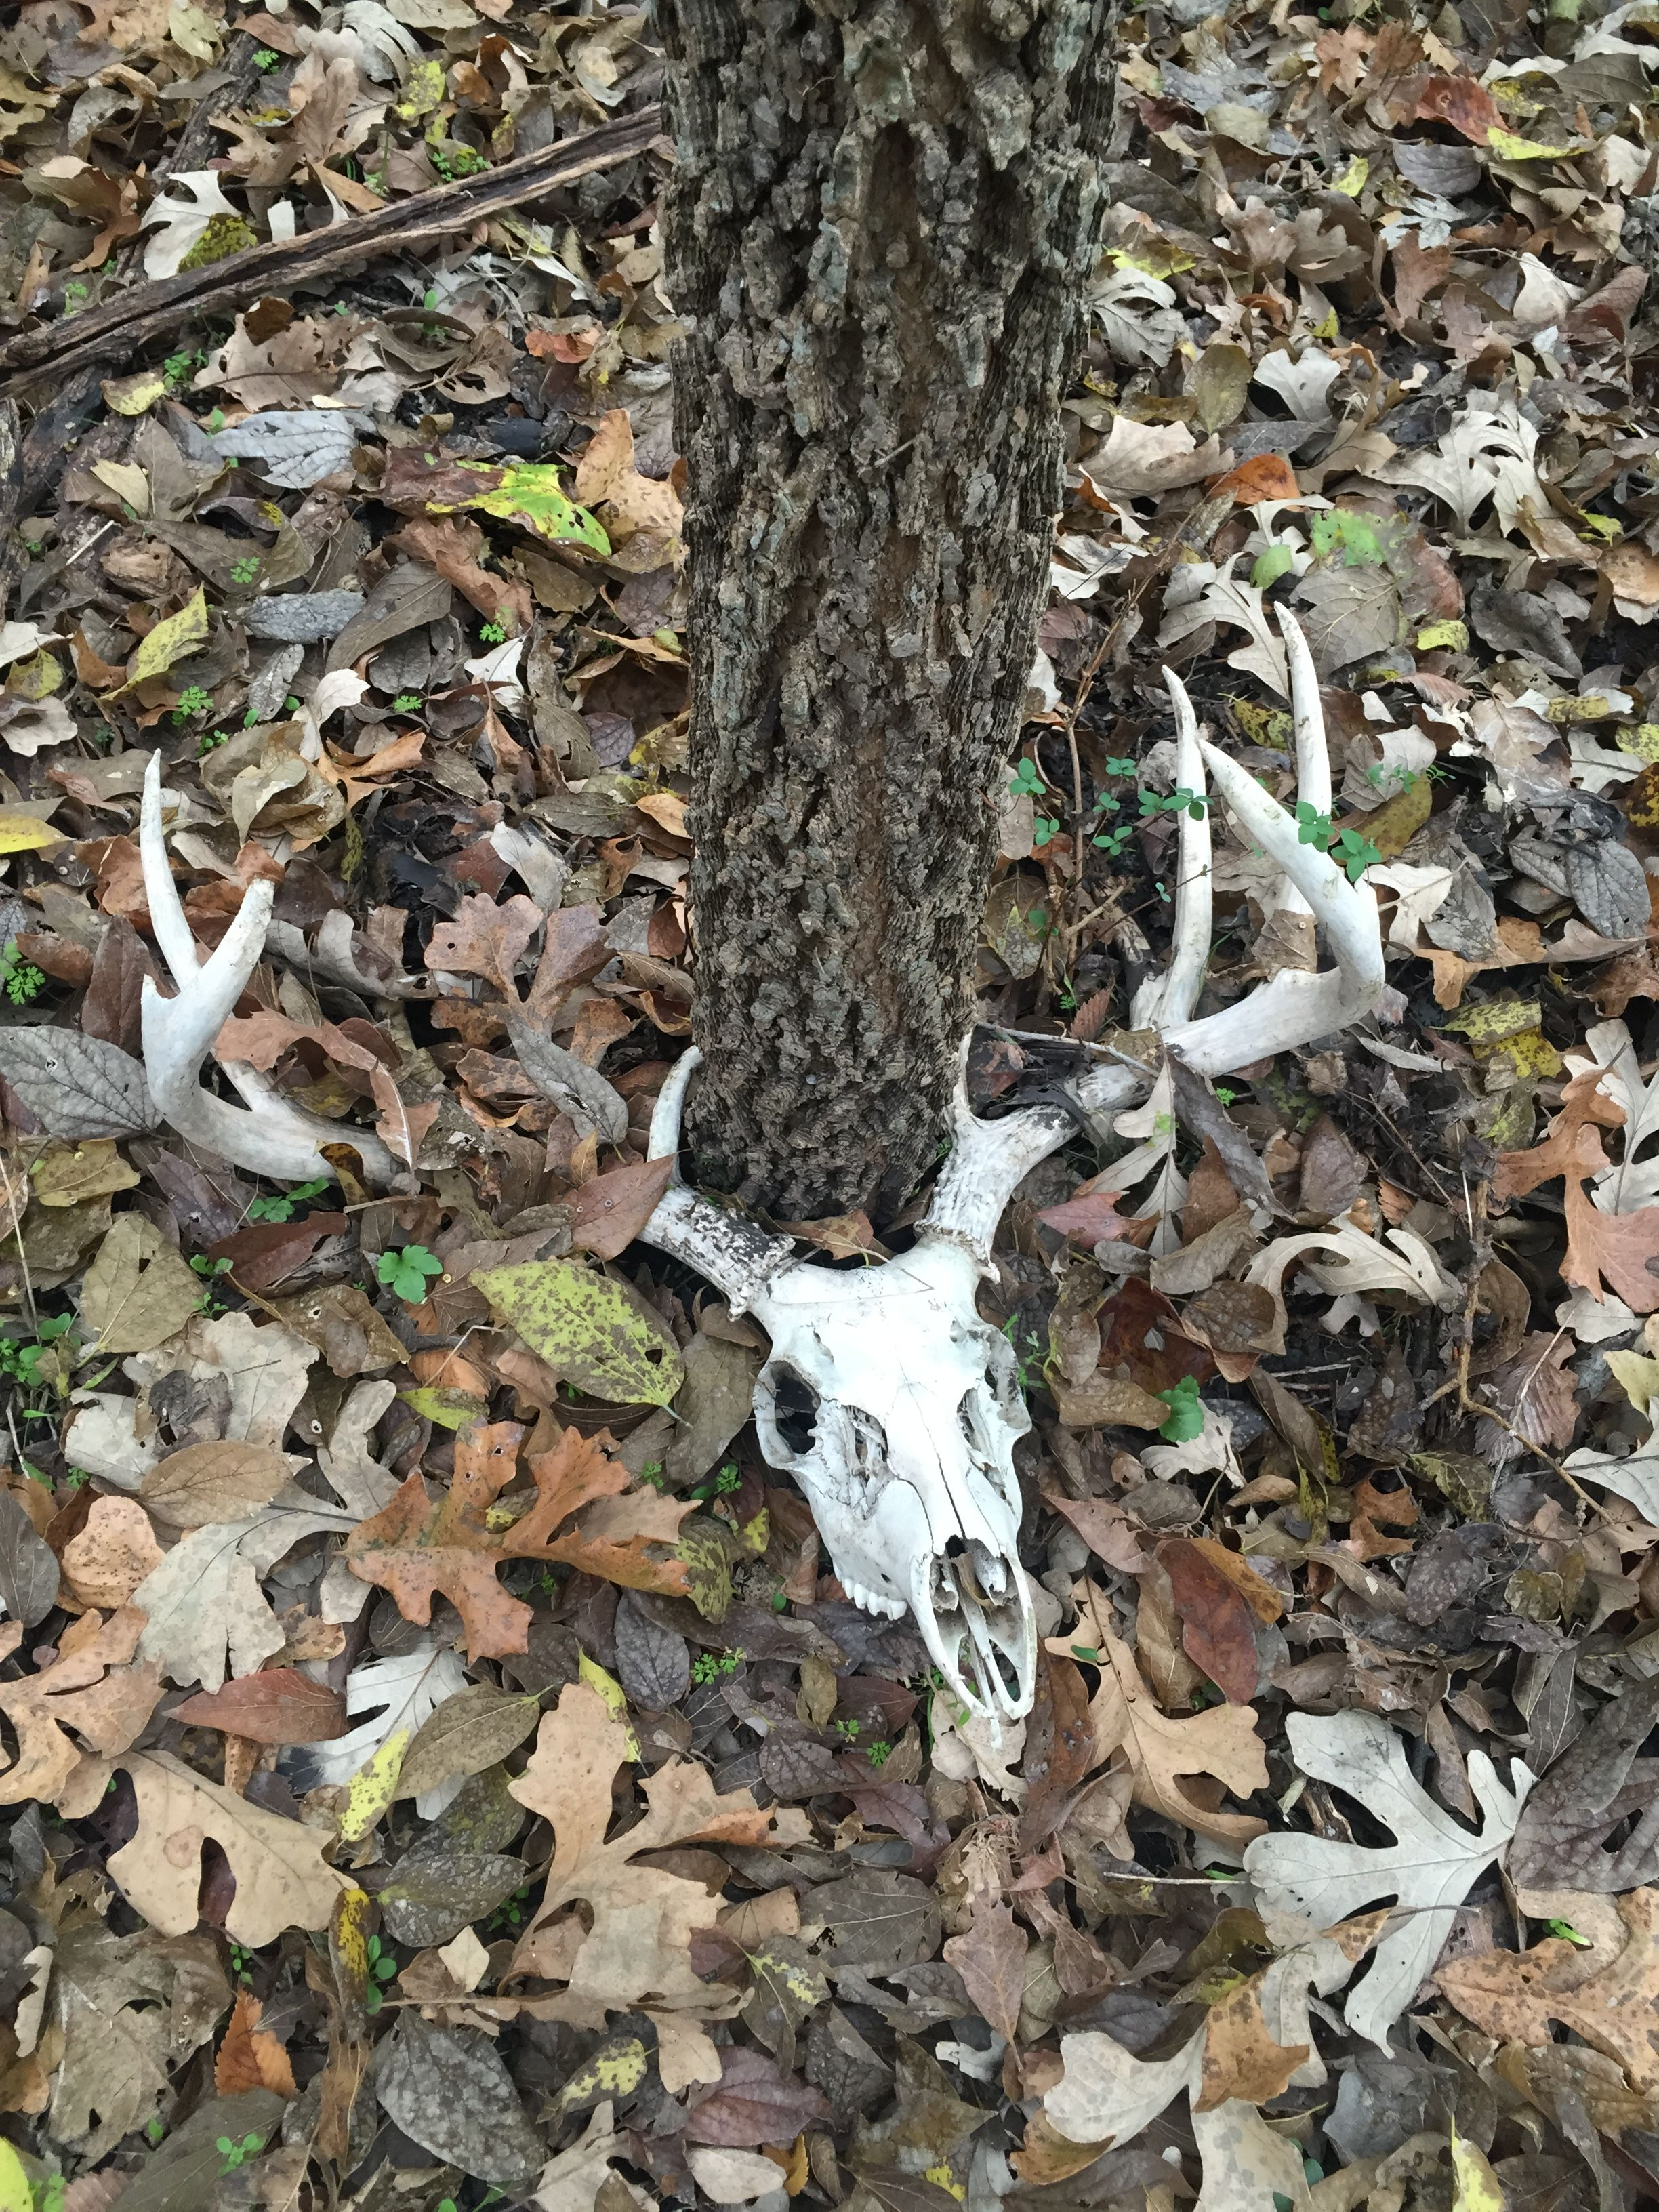 Deer skull found still locked to tree and was difficult to